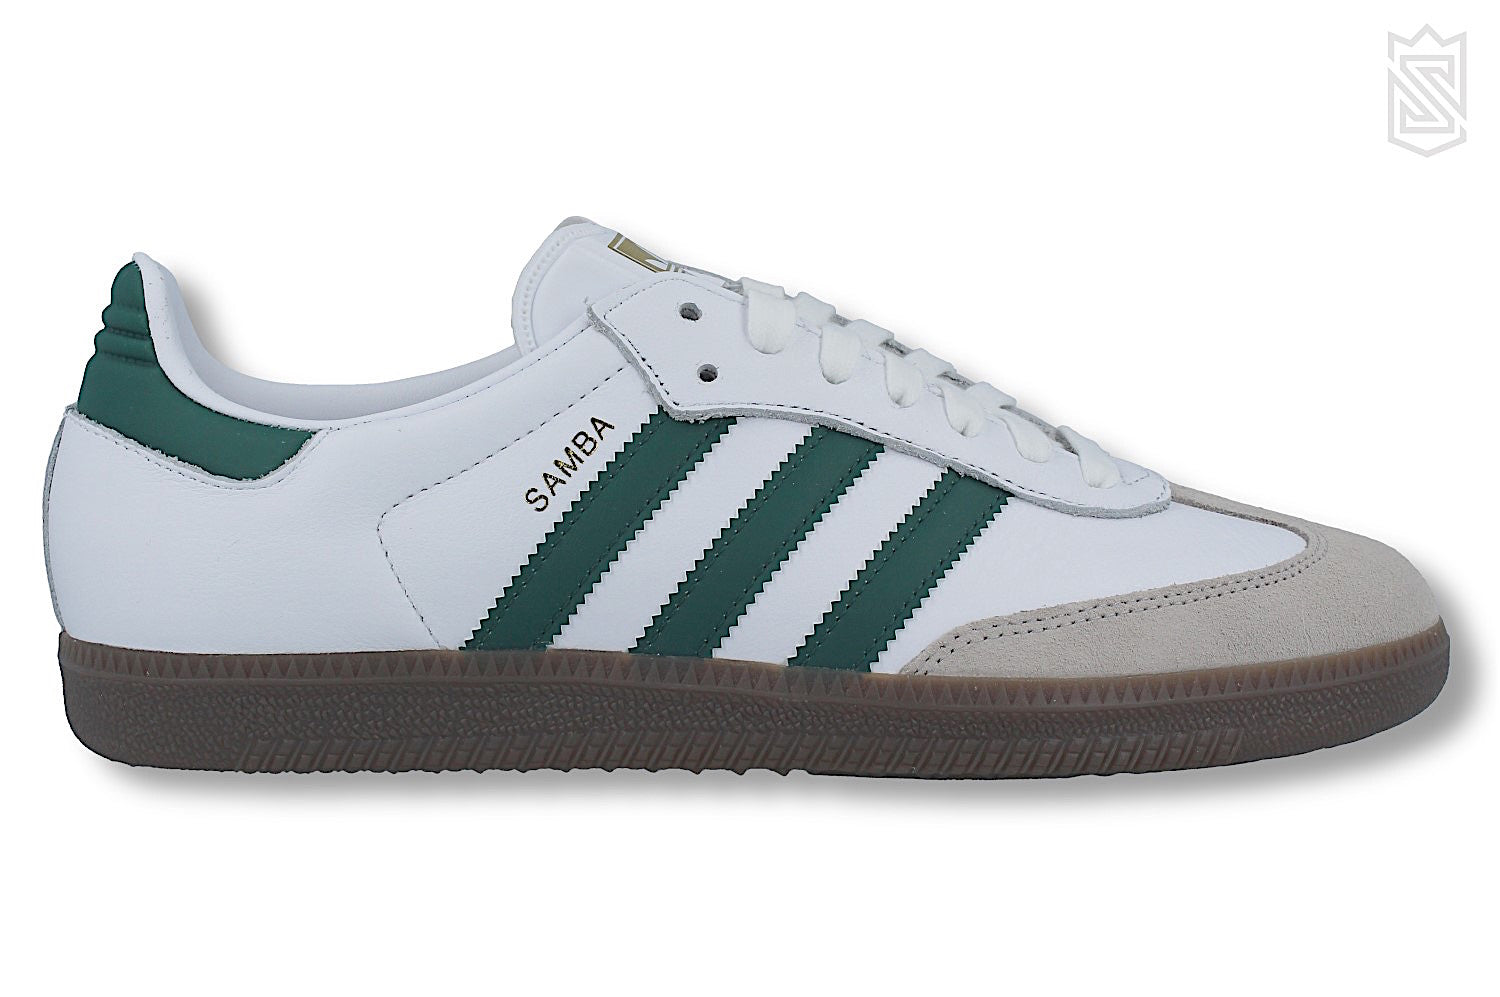 8e5b0 And Code Samba Adidas Promo For 84761 Rot Weiß shdrQt